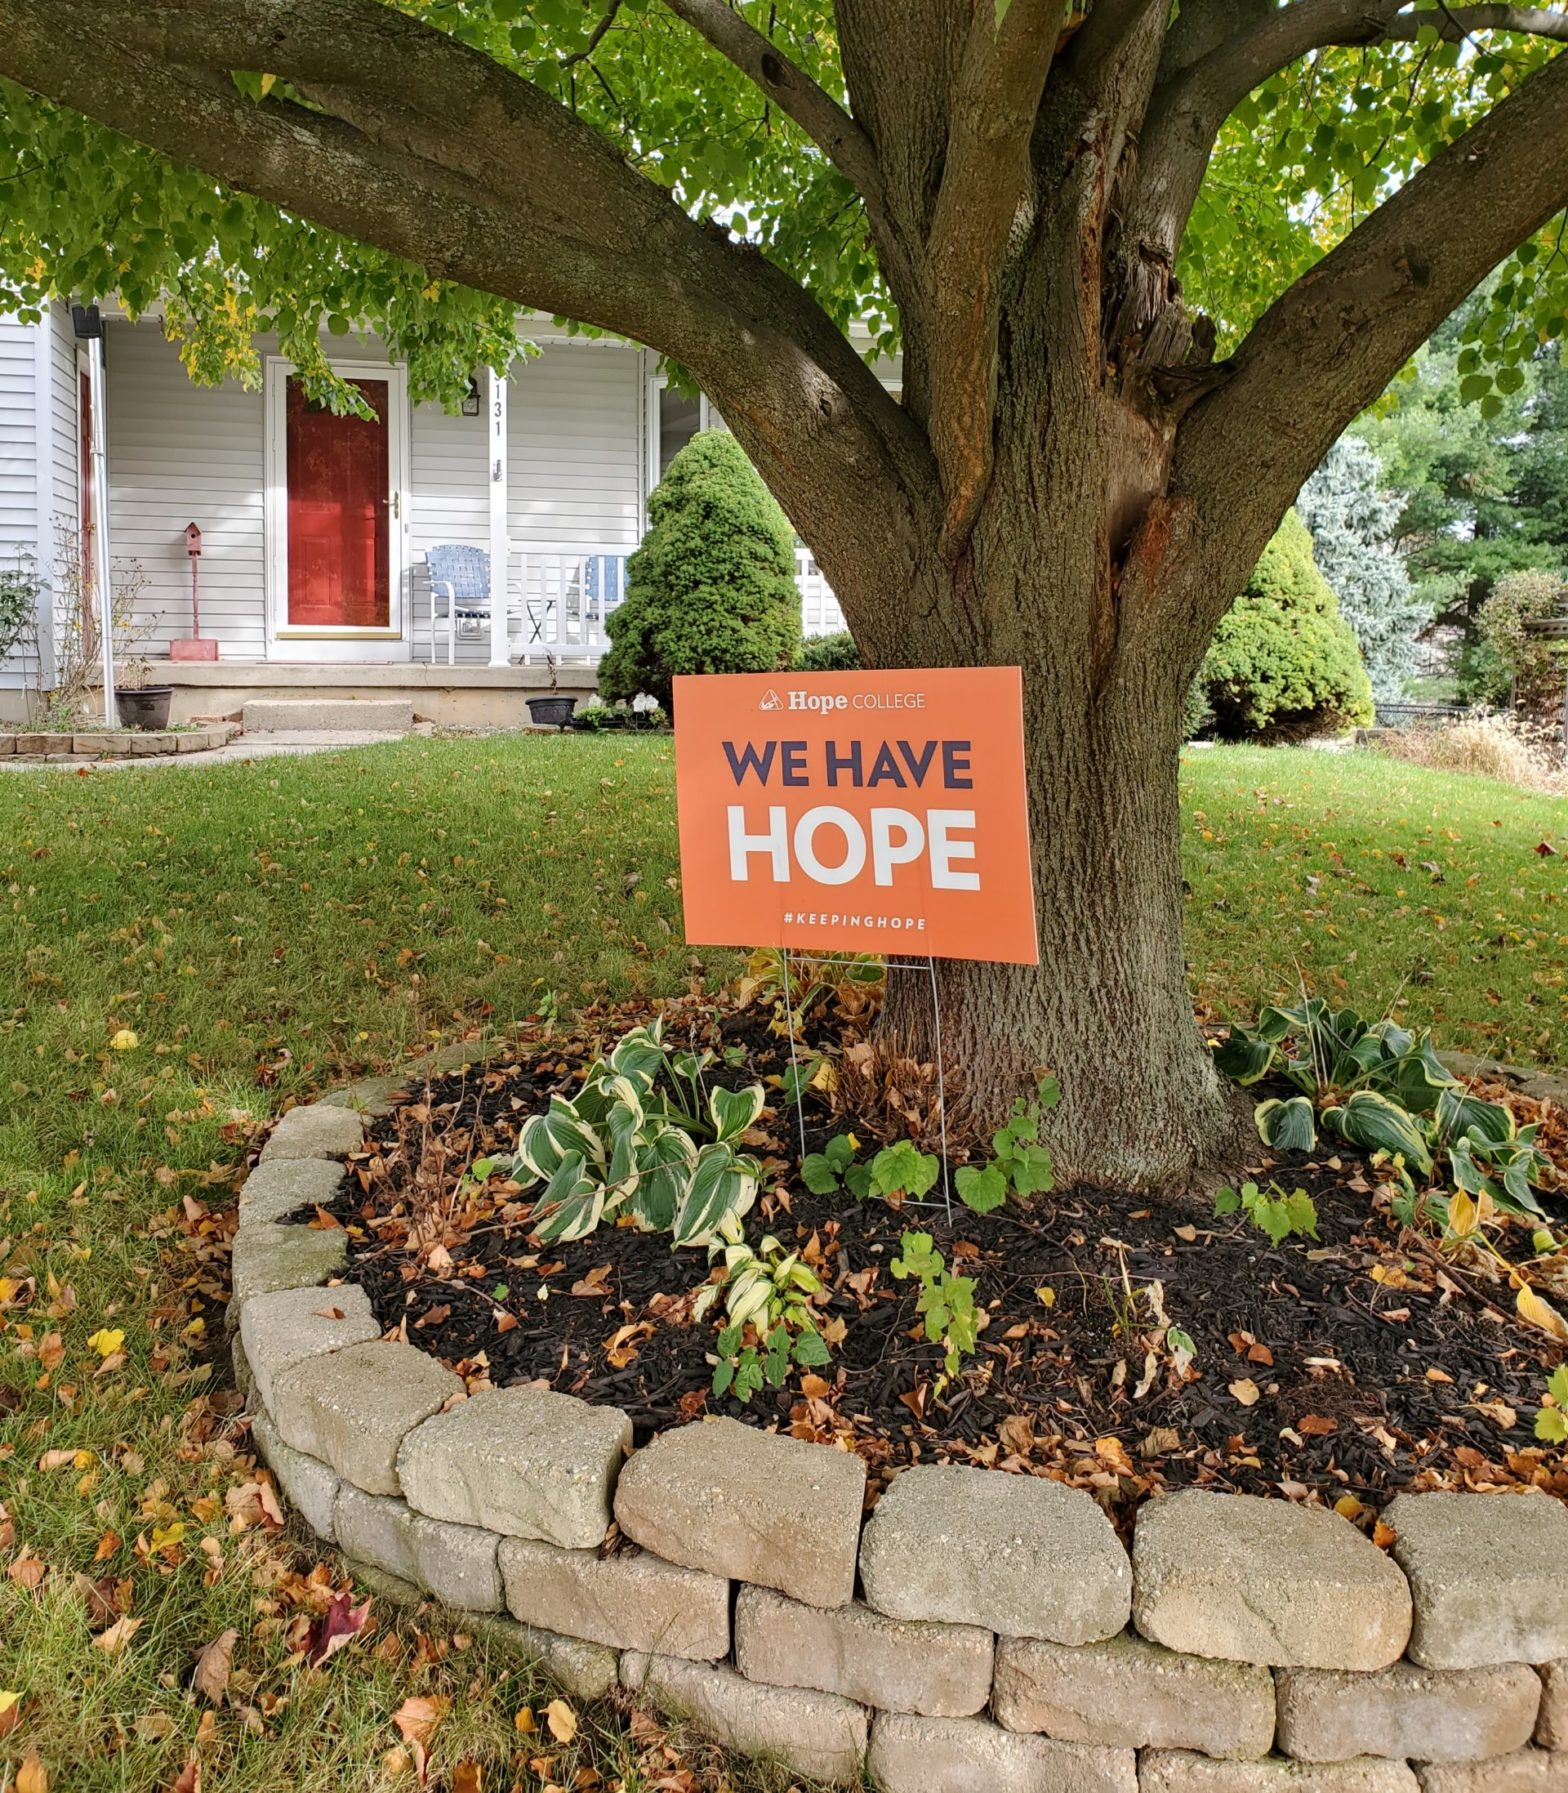 We Have Hope yard sign in a front yard of a home.